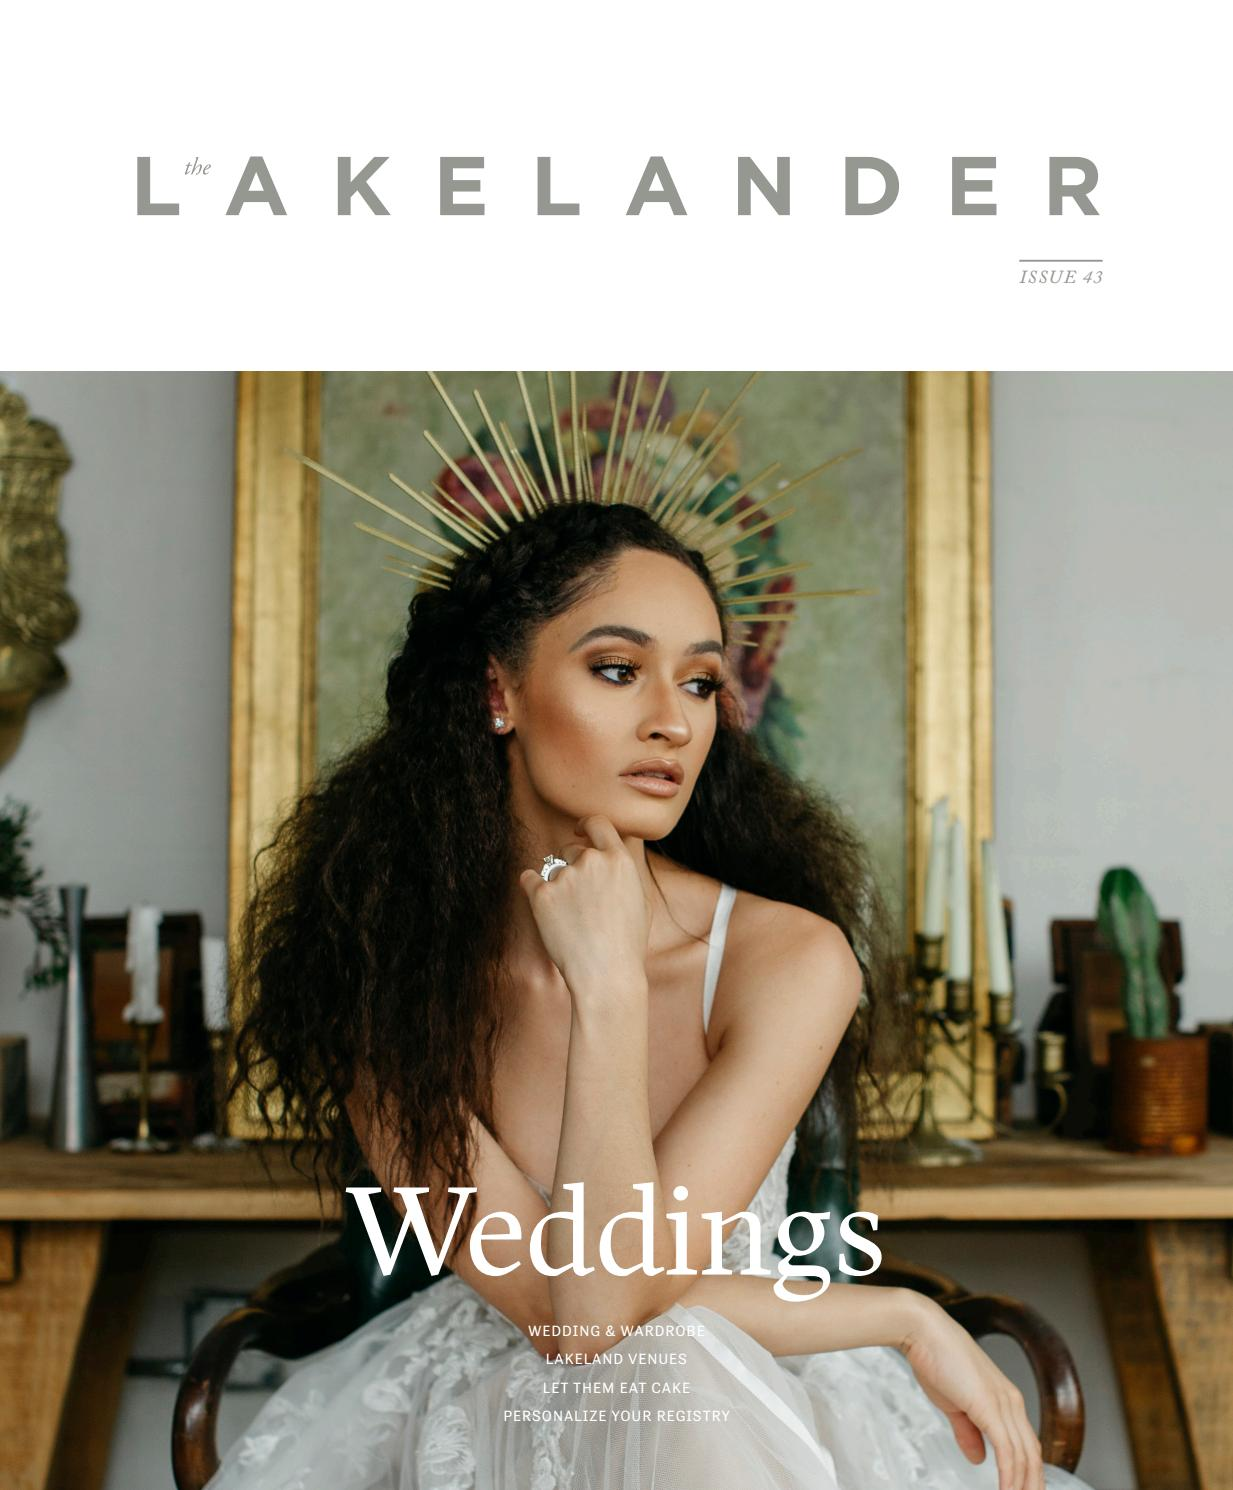 cdfd3135b22 The Lakelander - Issue 43   Weddings by The Lakelander - issuu